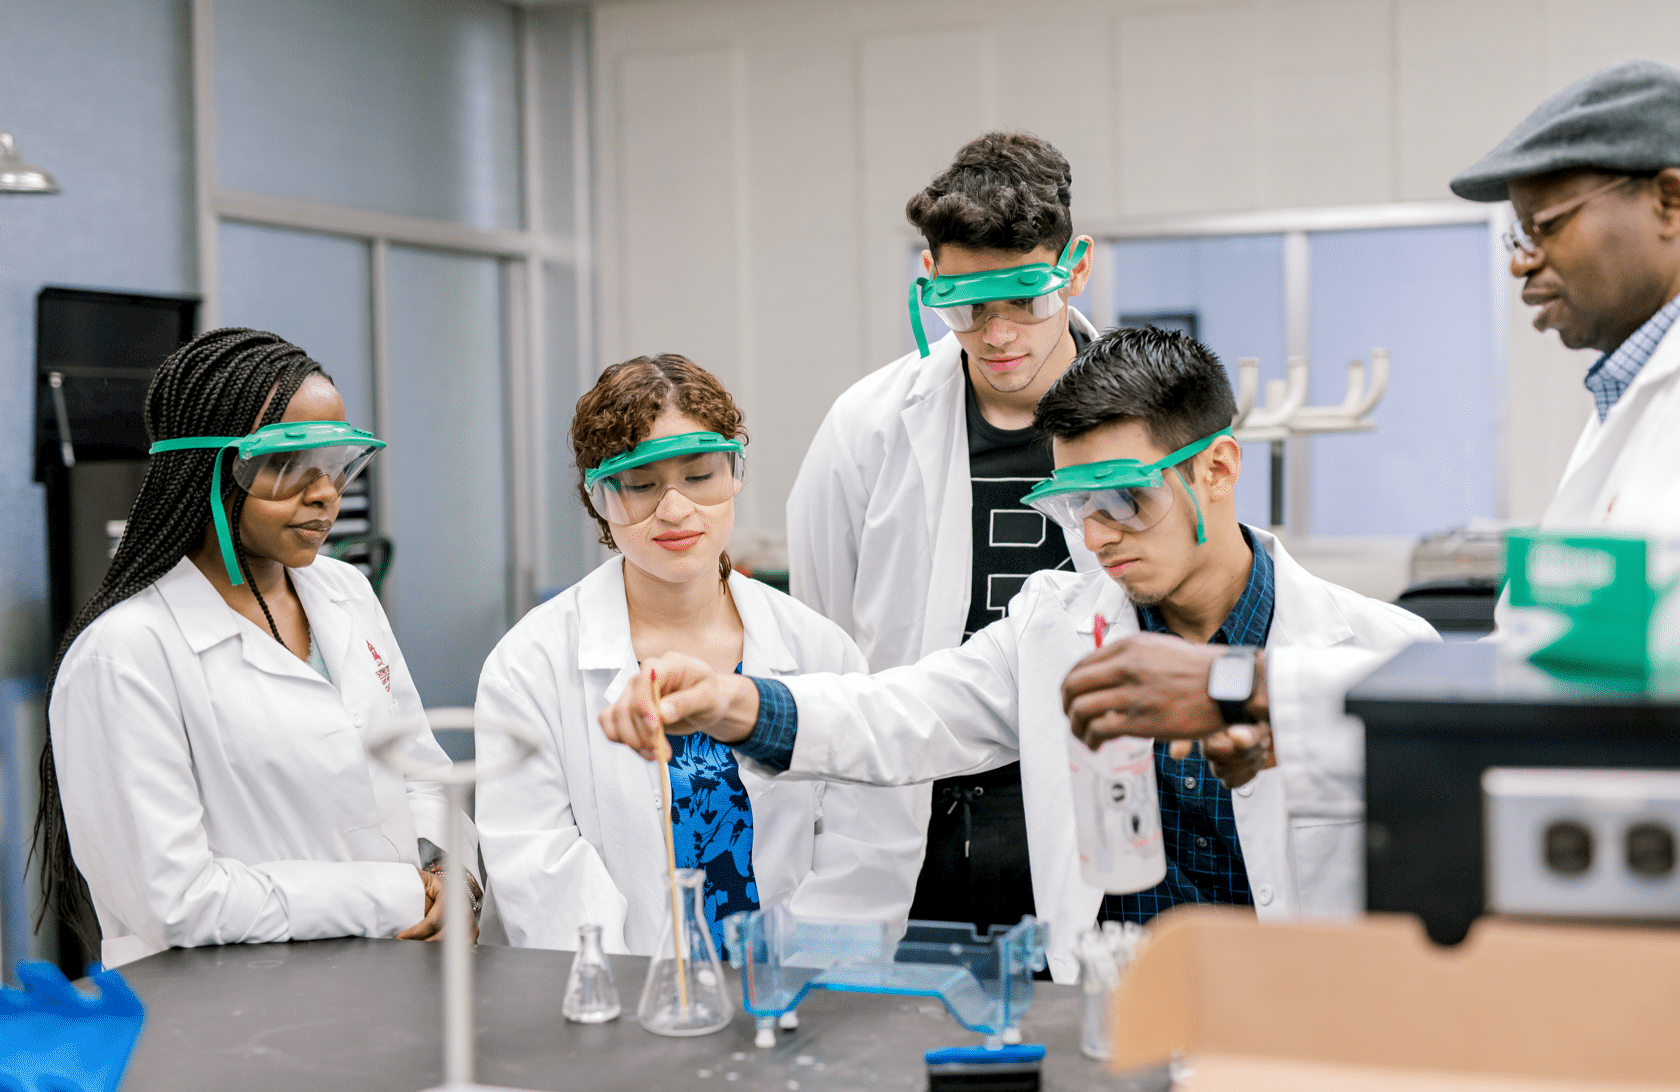 Groups of students with lab coats in lab doing an experiement with the professor